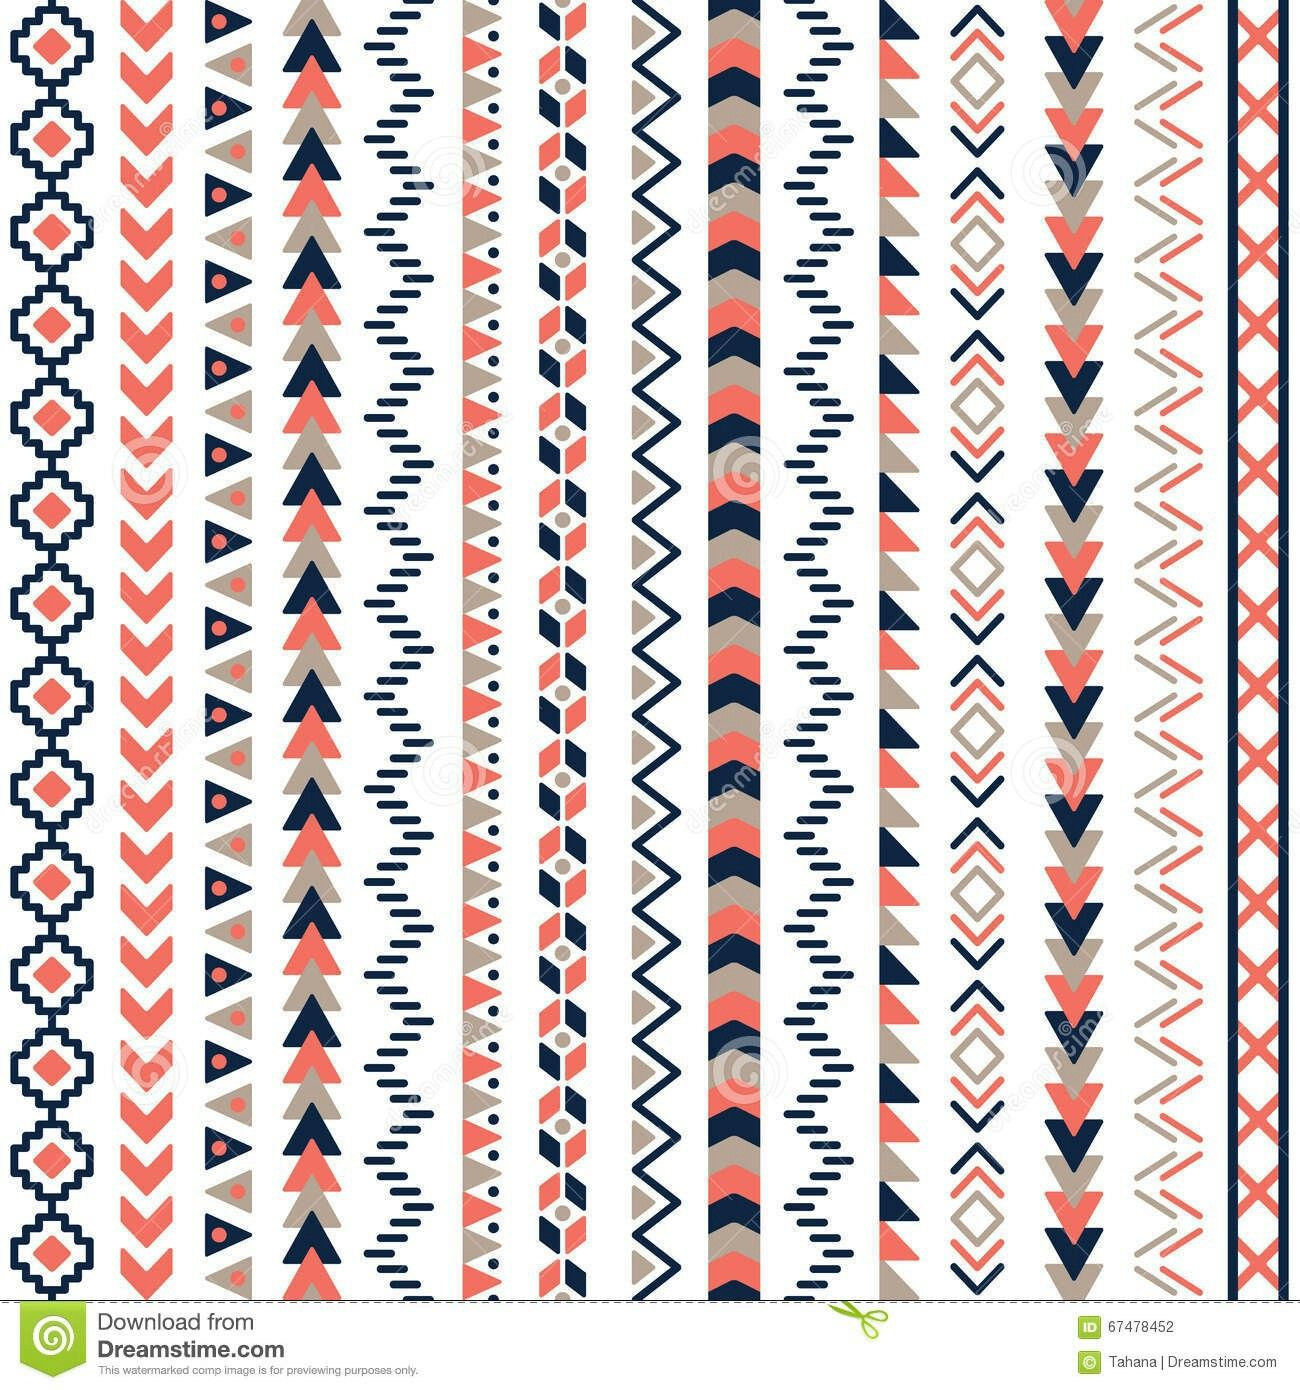 Pin by Tp & Kp on MOsaic Aztec pattern design, Tribal